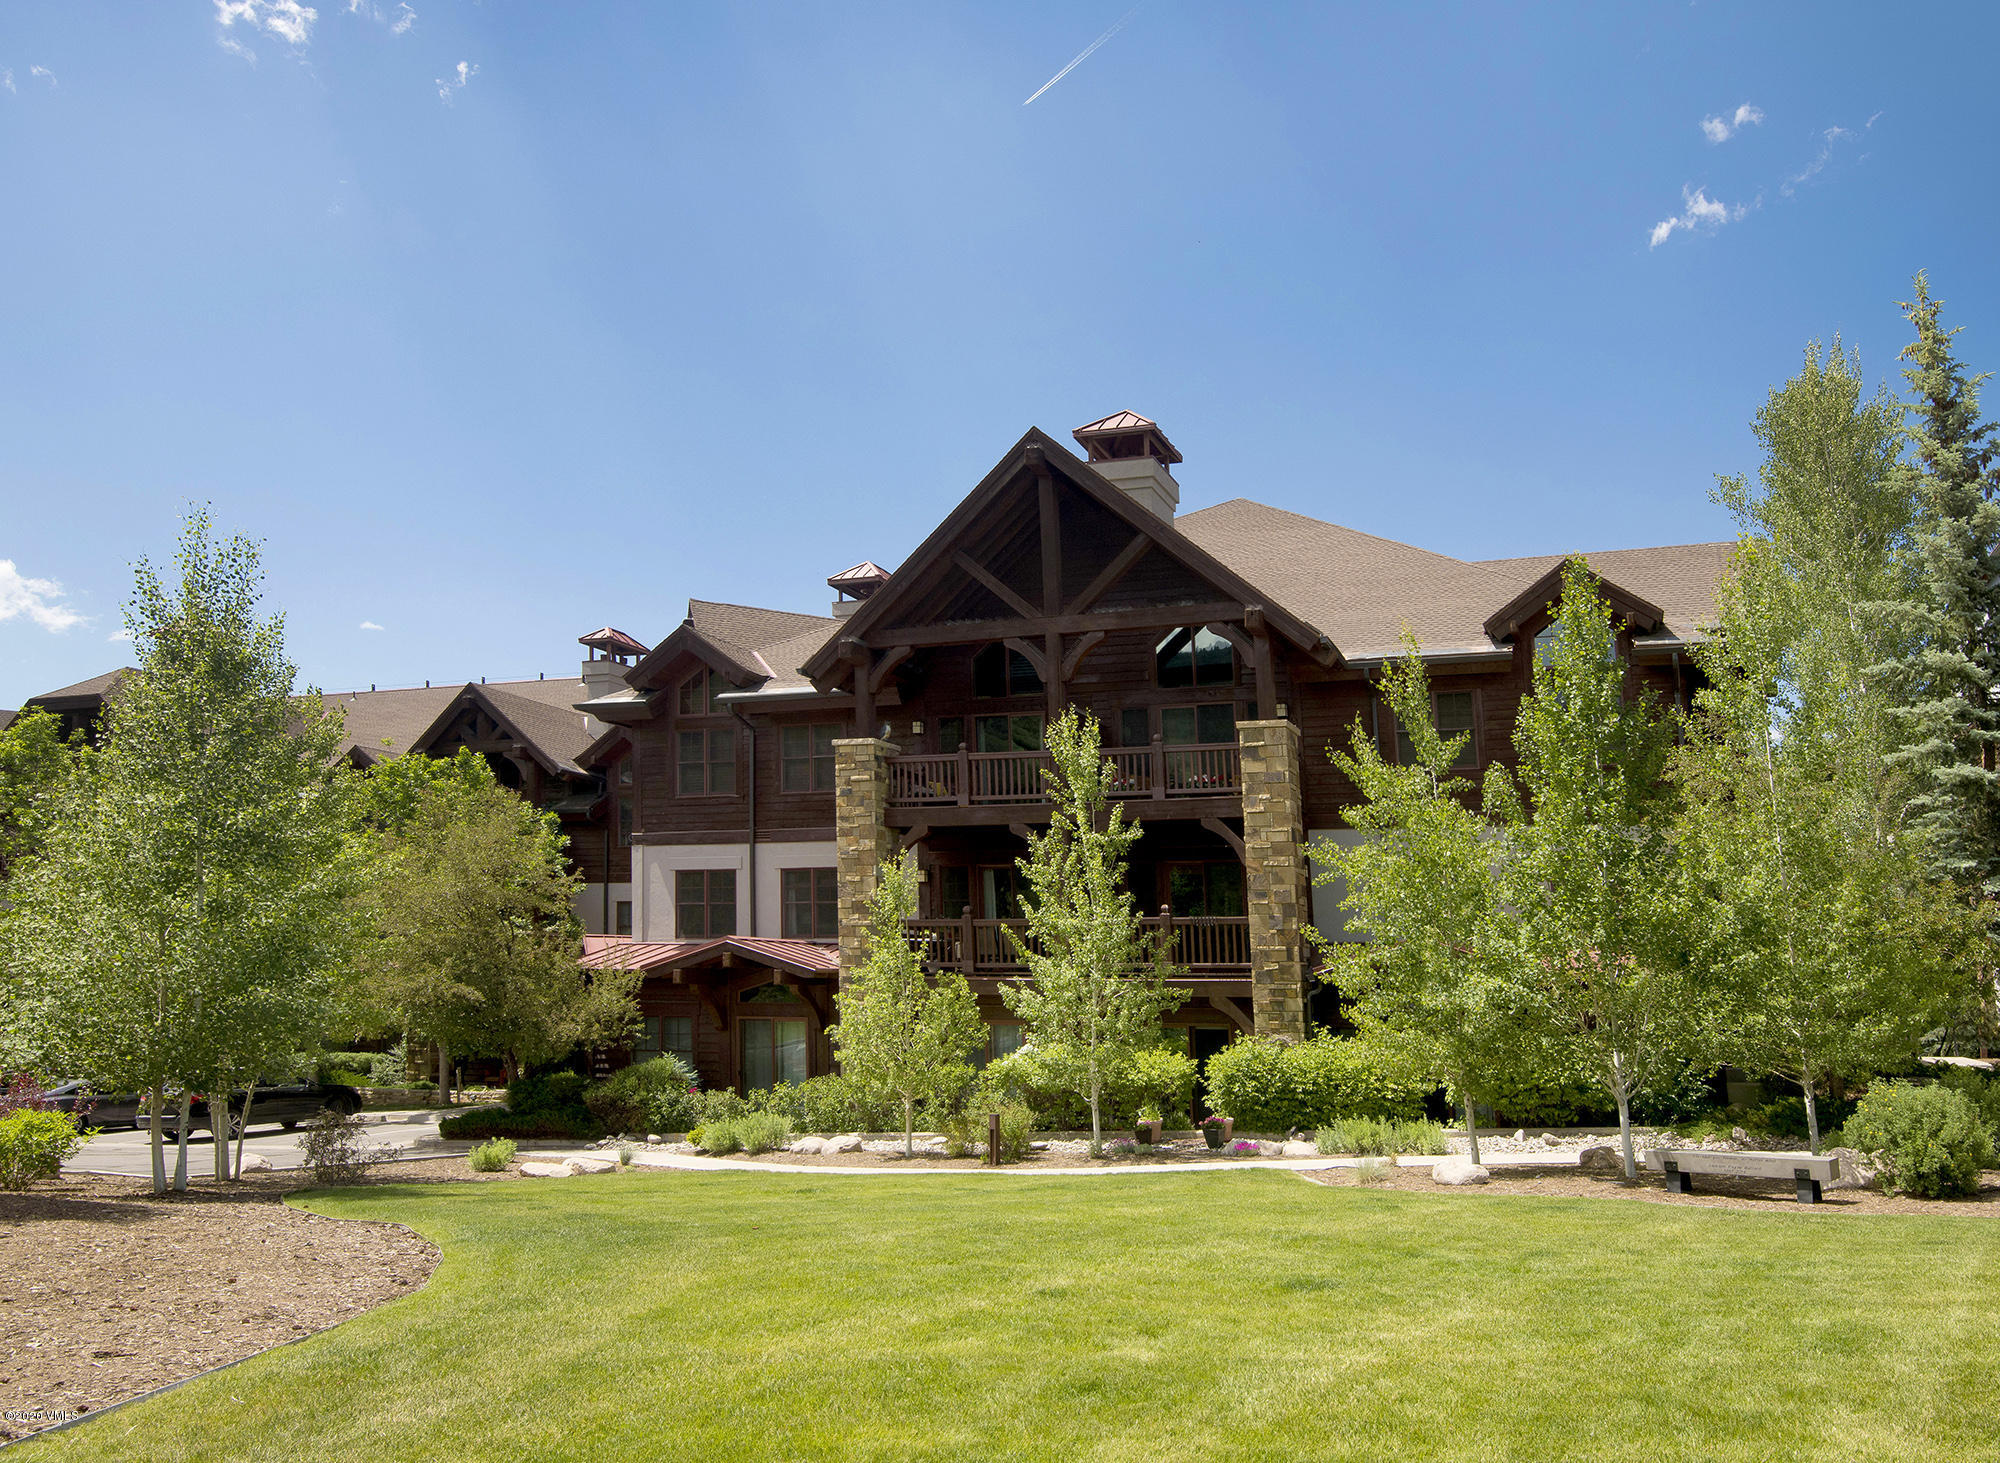 Amazing first time home buyer opportunity at the base of Beaver Creek! A local's special with skiing, hiking and biking out your door. Garage parking, storage locker, ski locker, pool & fitness center onsite. 1 bedroom, 1.5 bathrooms, fireplace, balcony, full washer/dryer, 1 level living make this the perfect Vail Valley home. Deed Restricted to occupants employed in Eagle County.